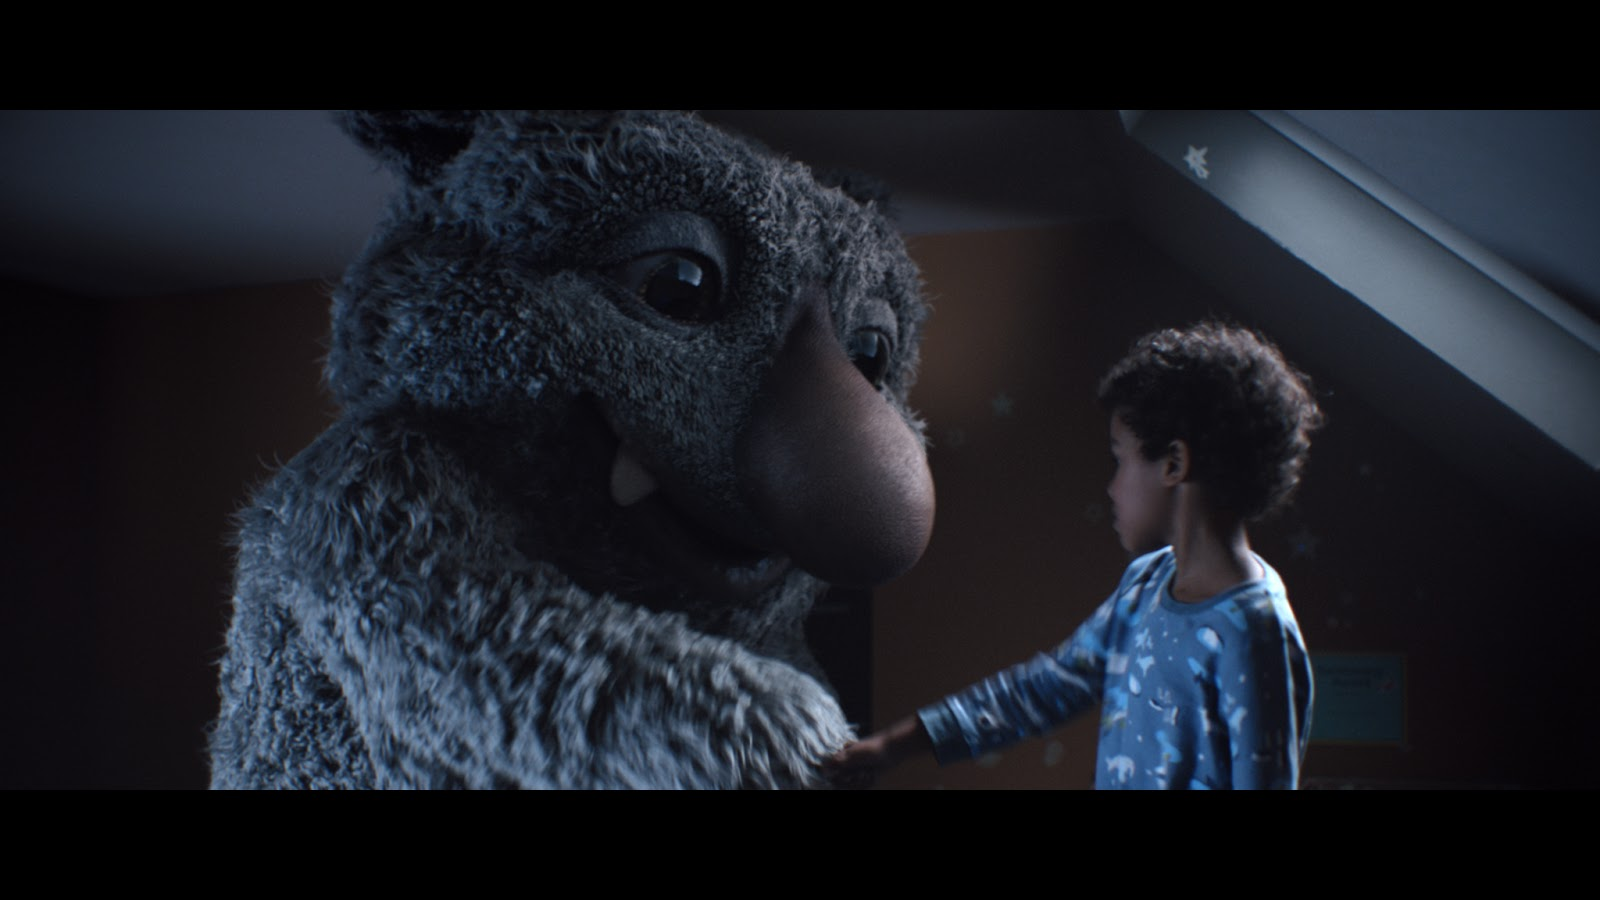 john lewis christmas marketing campaign The john lewis christmas advert is a television advertising campaign released by british department store chain john lewis in the build-up to christmas john lewis launched their first christmas advert in 2007 it has since become something of an annual tradition in british popular culture, and one of the signals that the.